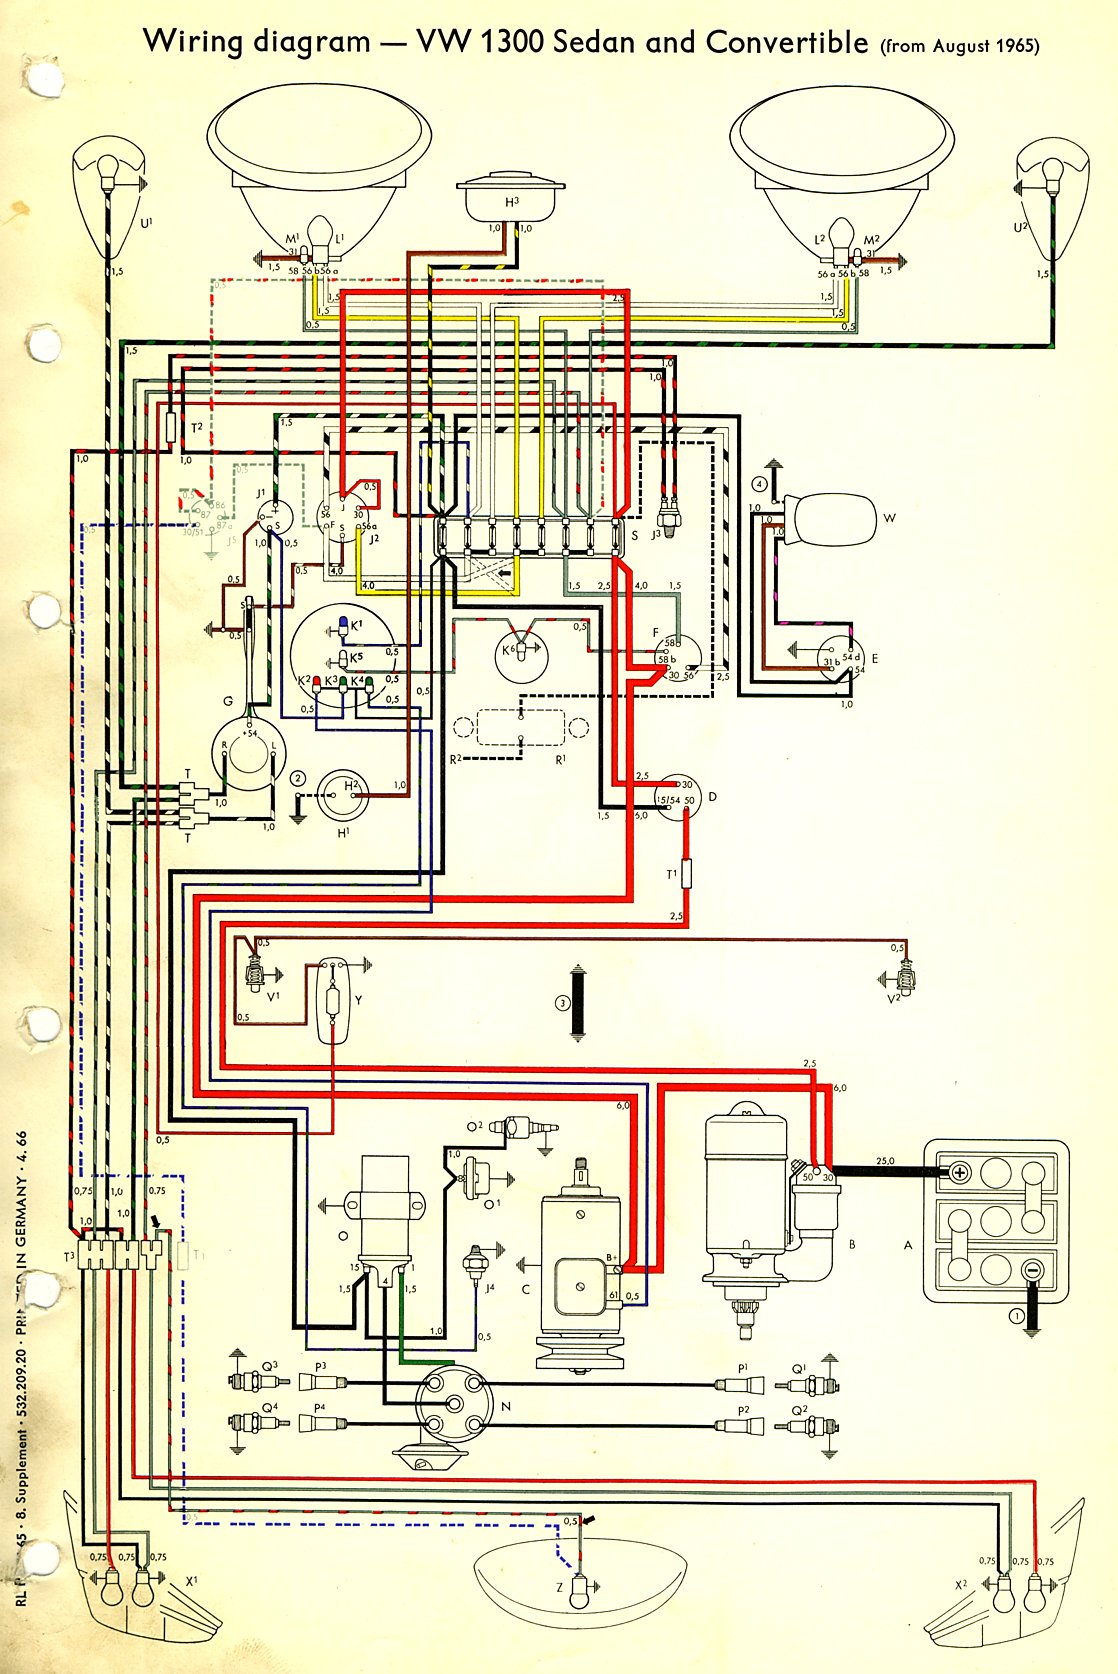 Vw Beetle Wiring Diagram : Karmann ghia wiring diagram get free image about